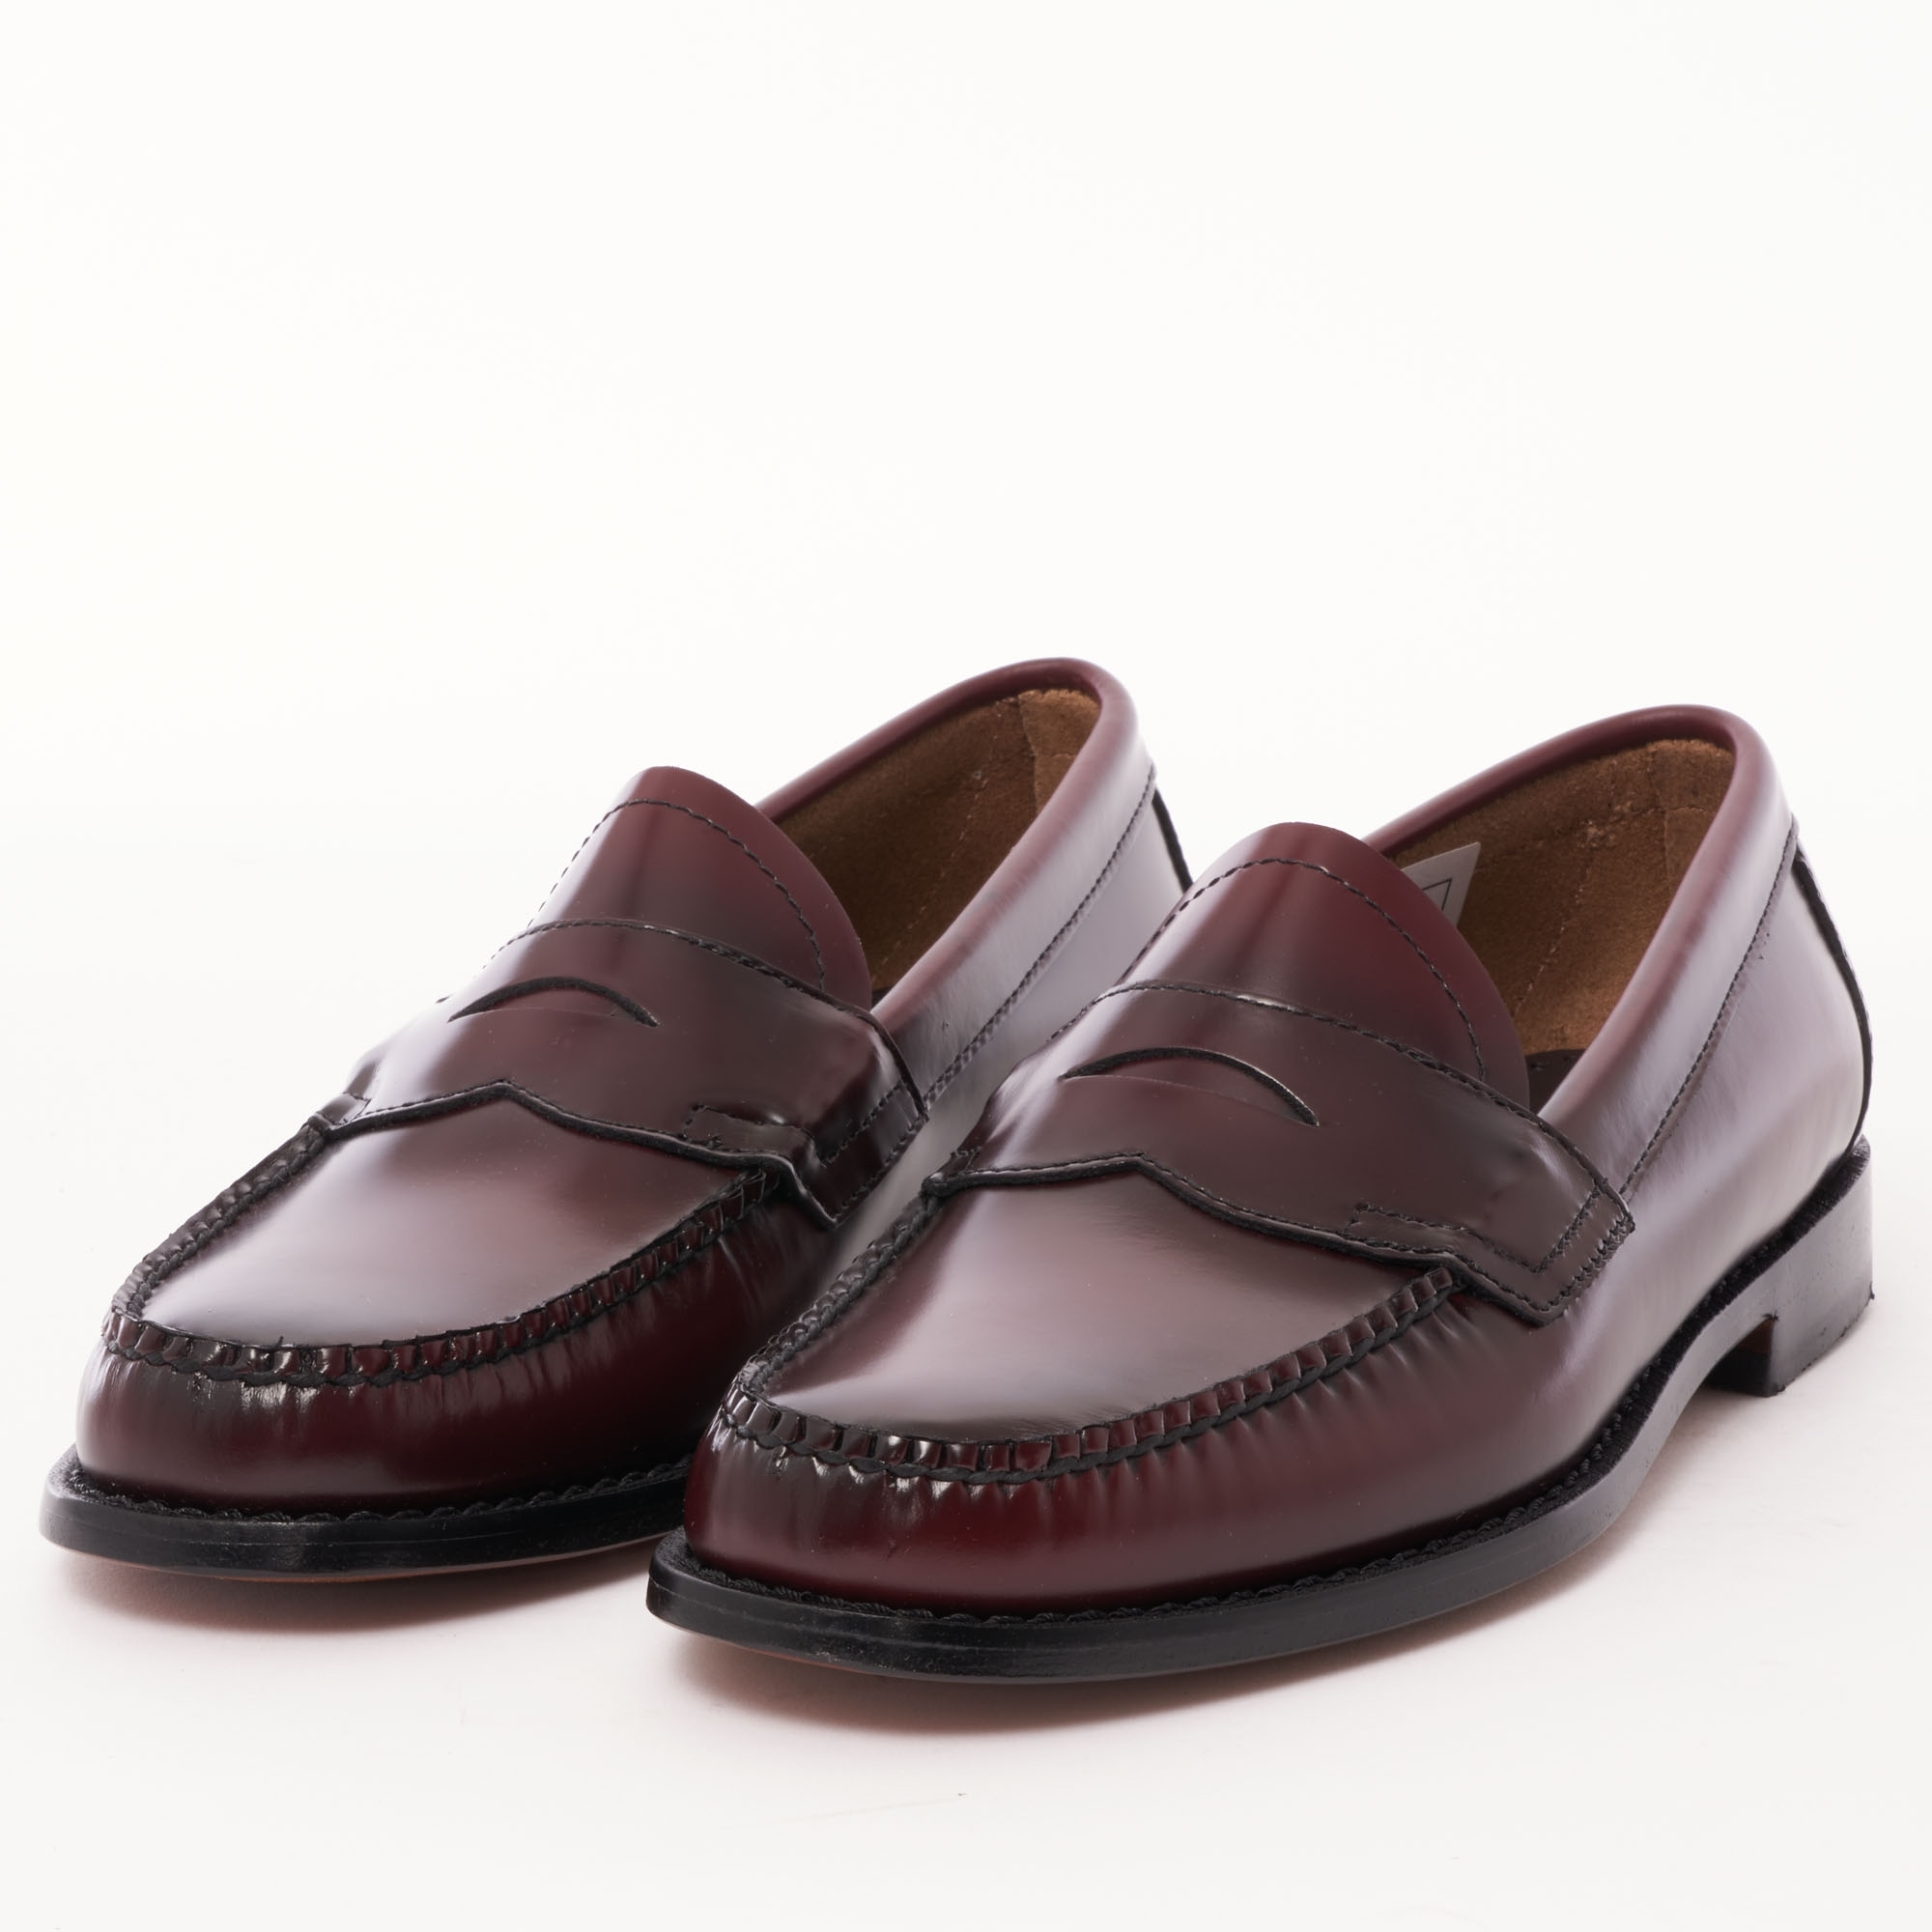 269fcaf6060 Bass Weejuns Logan Polished Leather Loafer (Wine) at Dandy Fellow